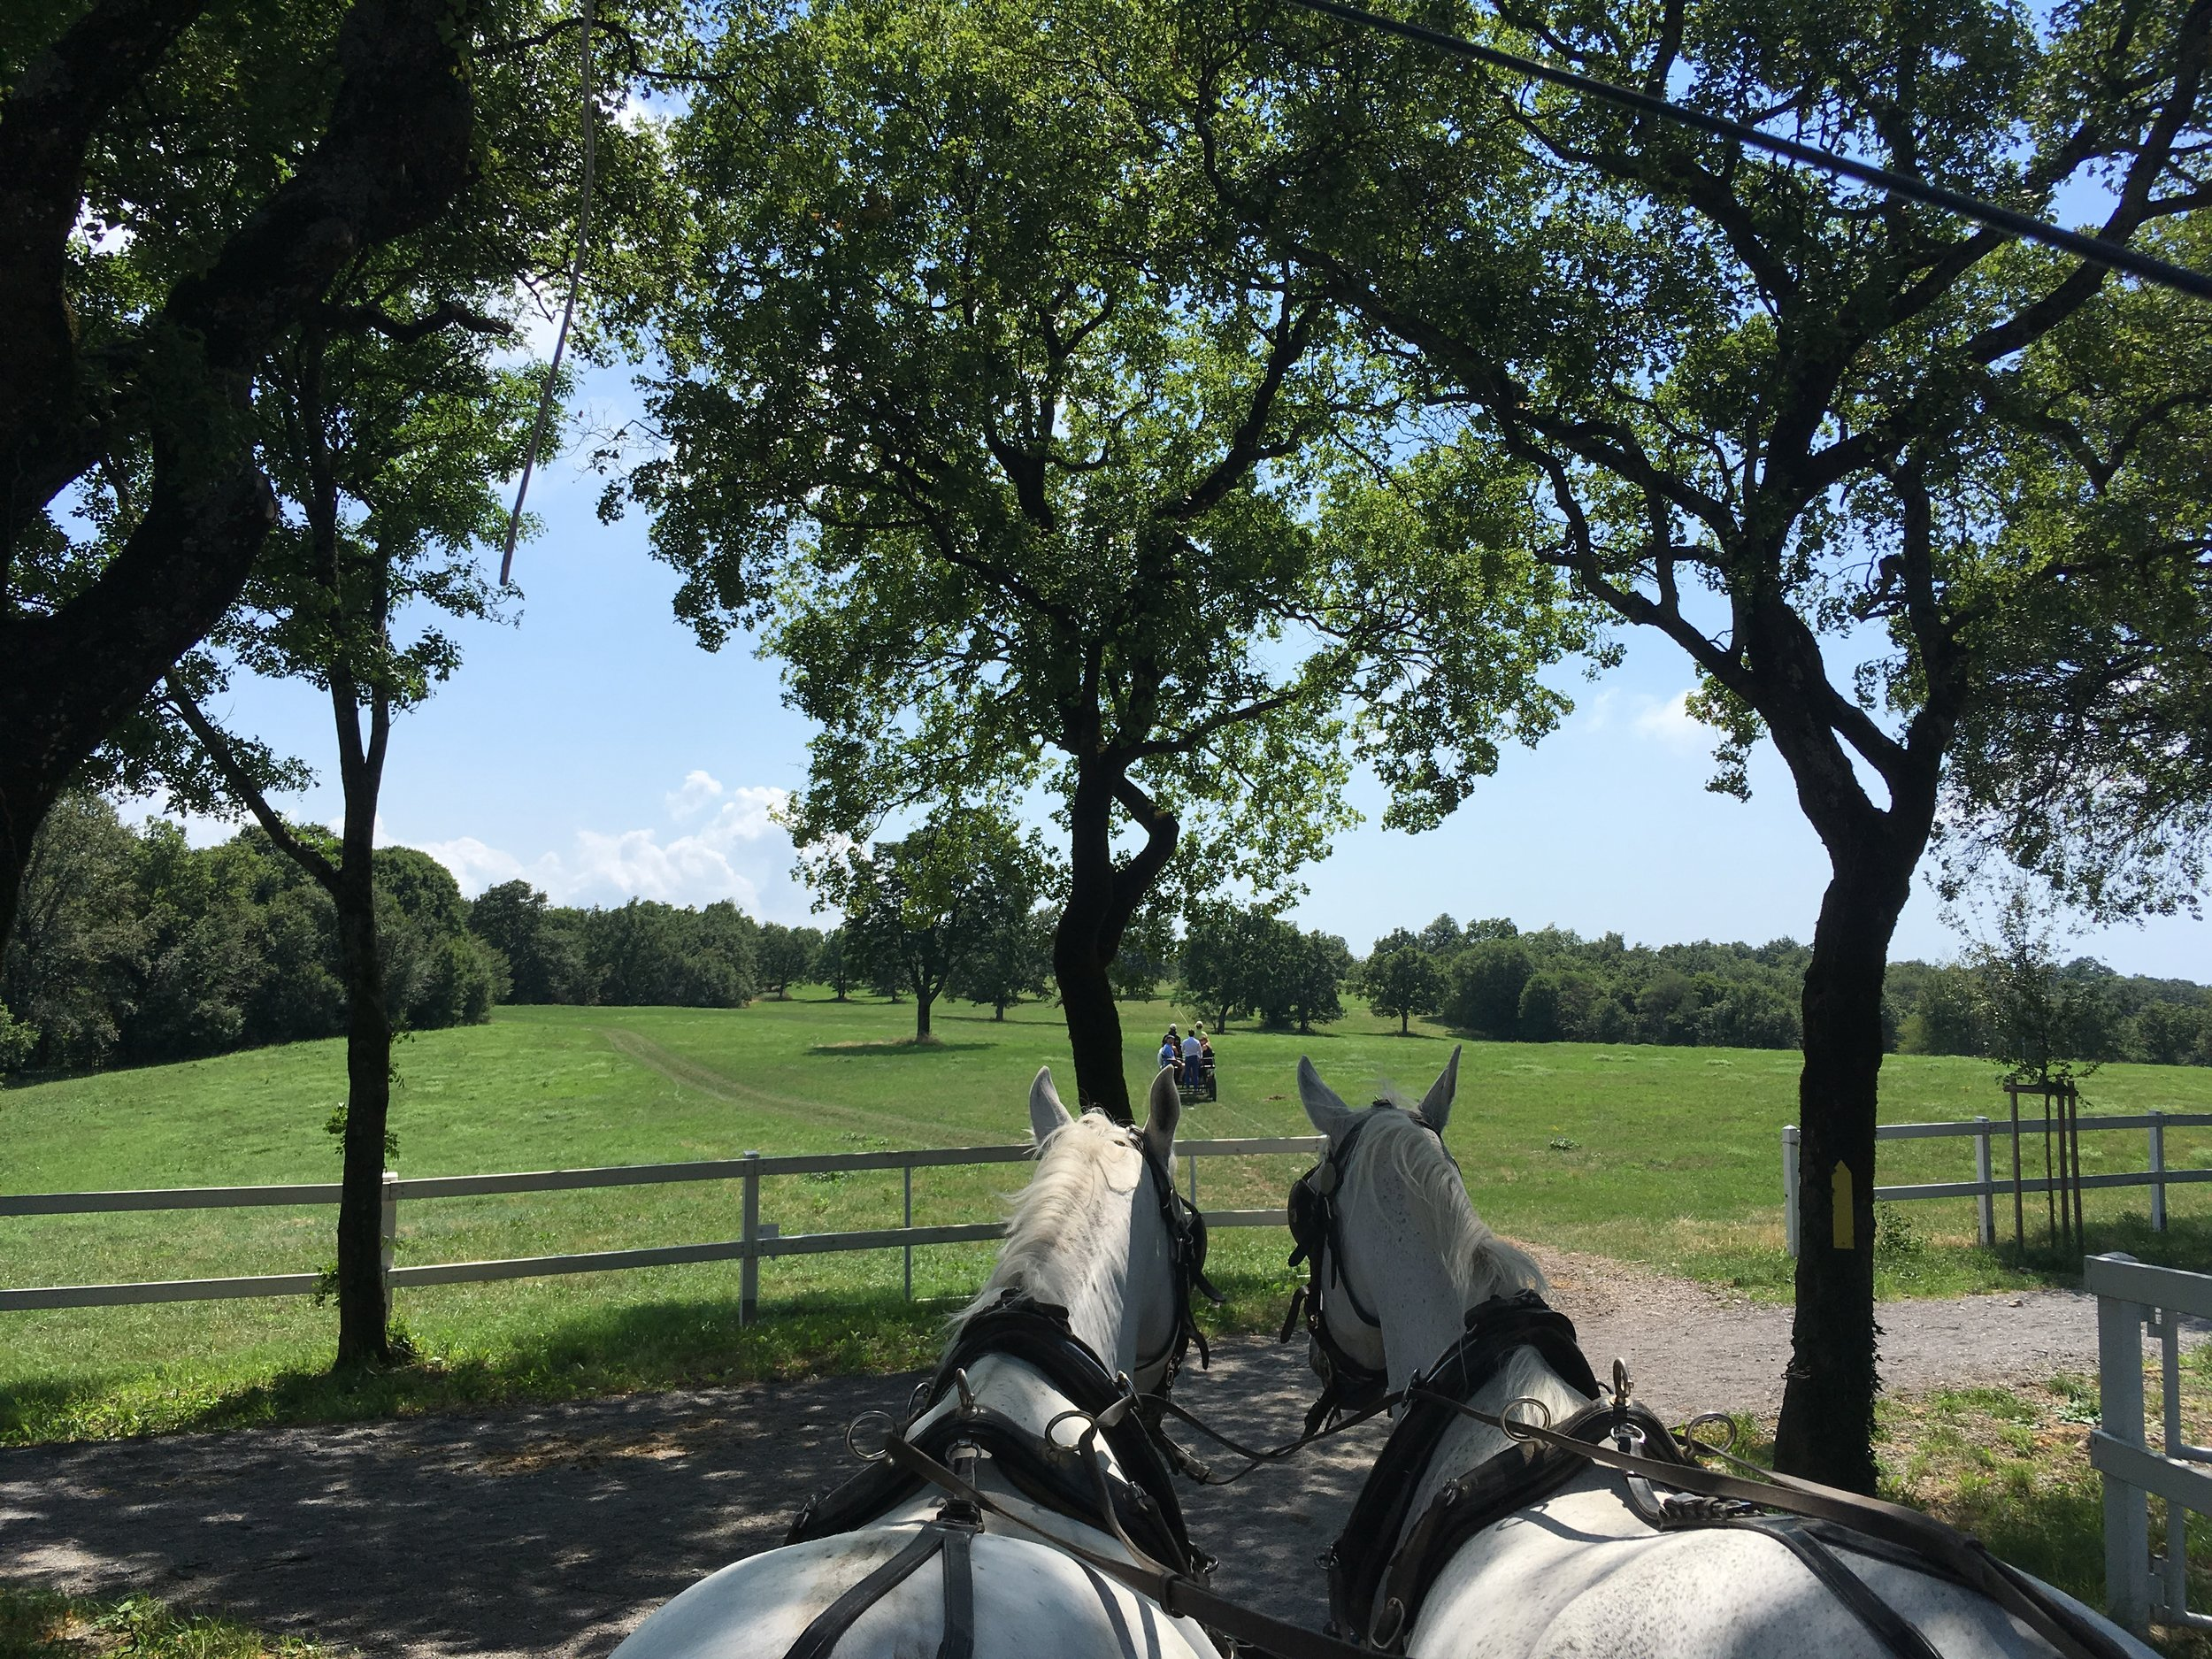 If you don't want to ride the horses, you can also take a horse carriage ride around Lipica.